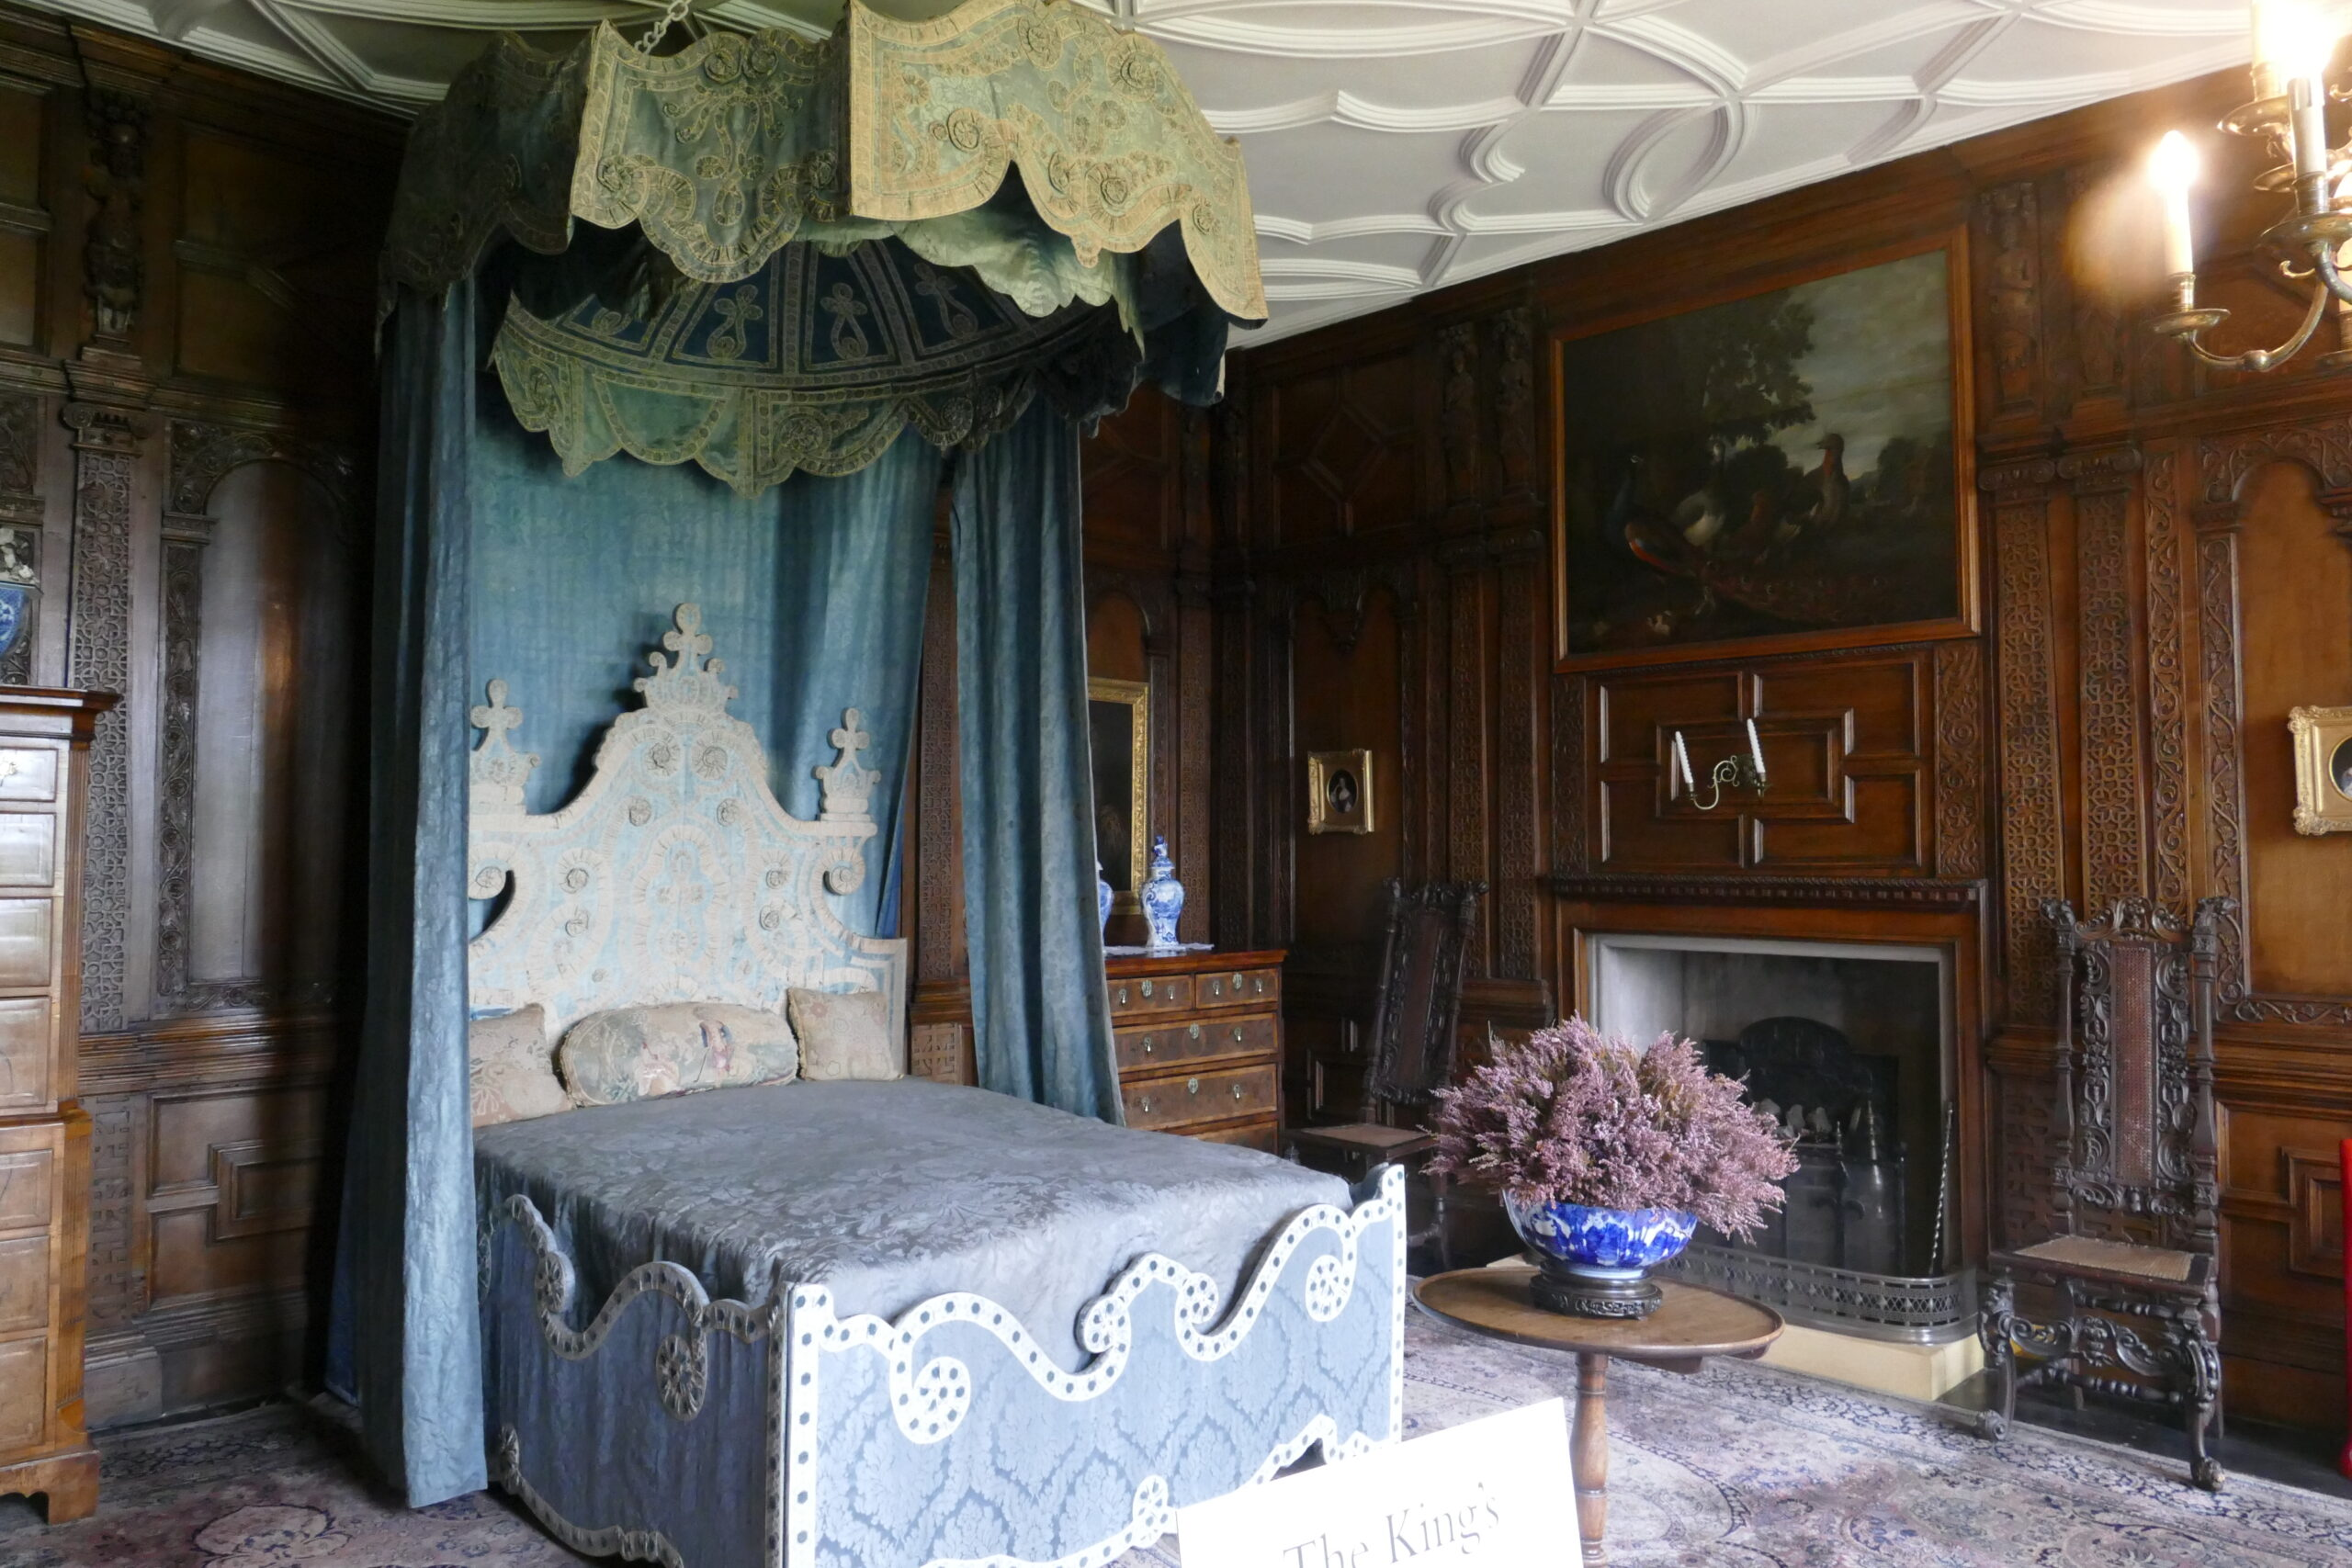 Image of an opulent bedroom with a canopy.